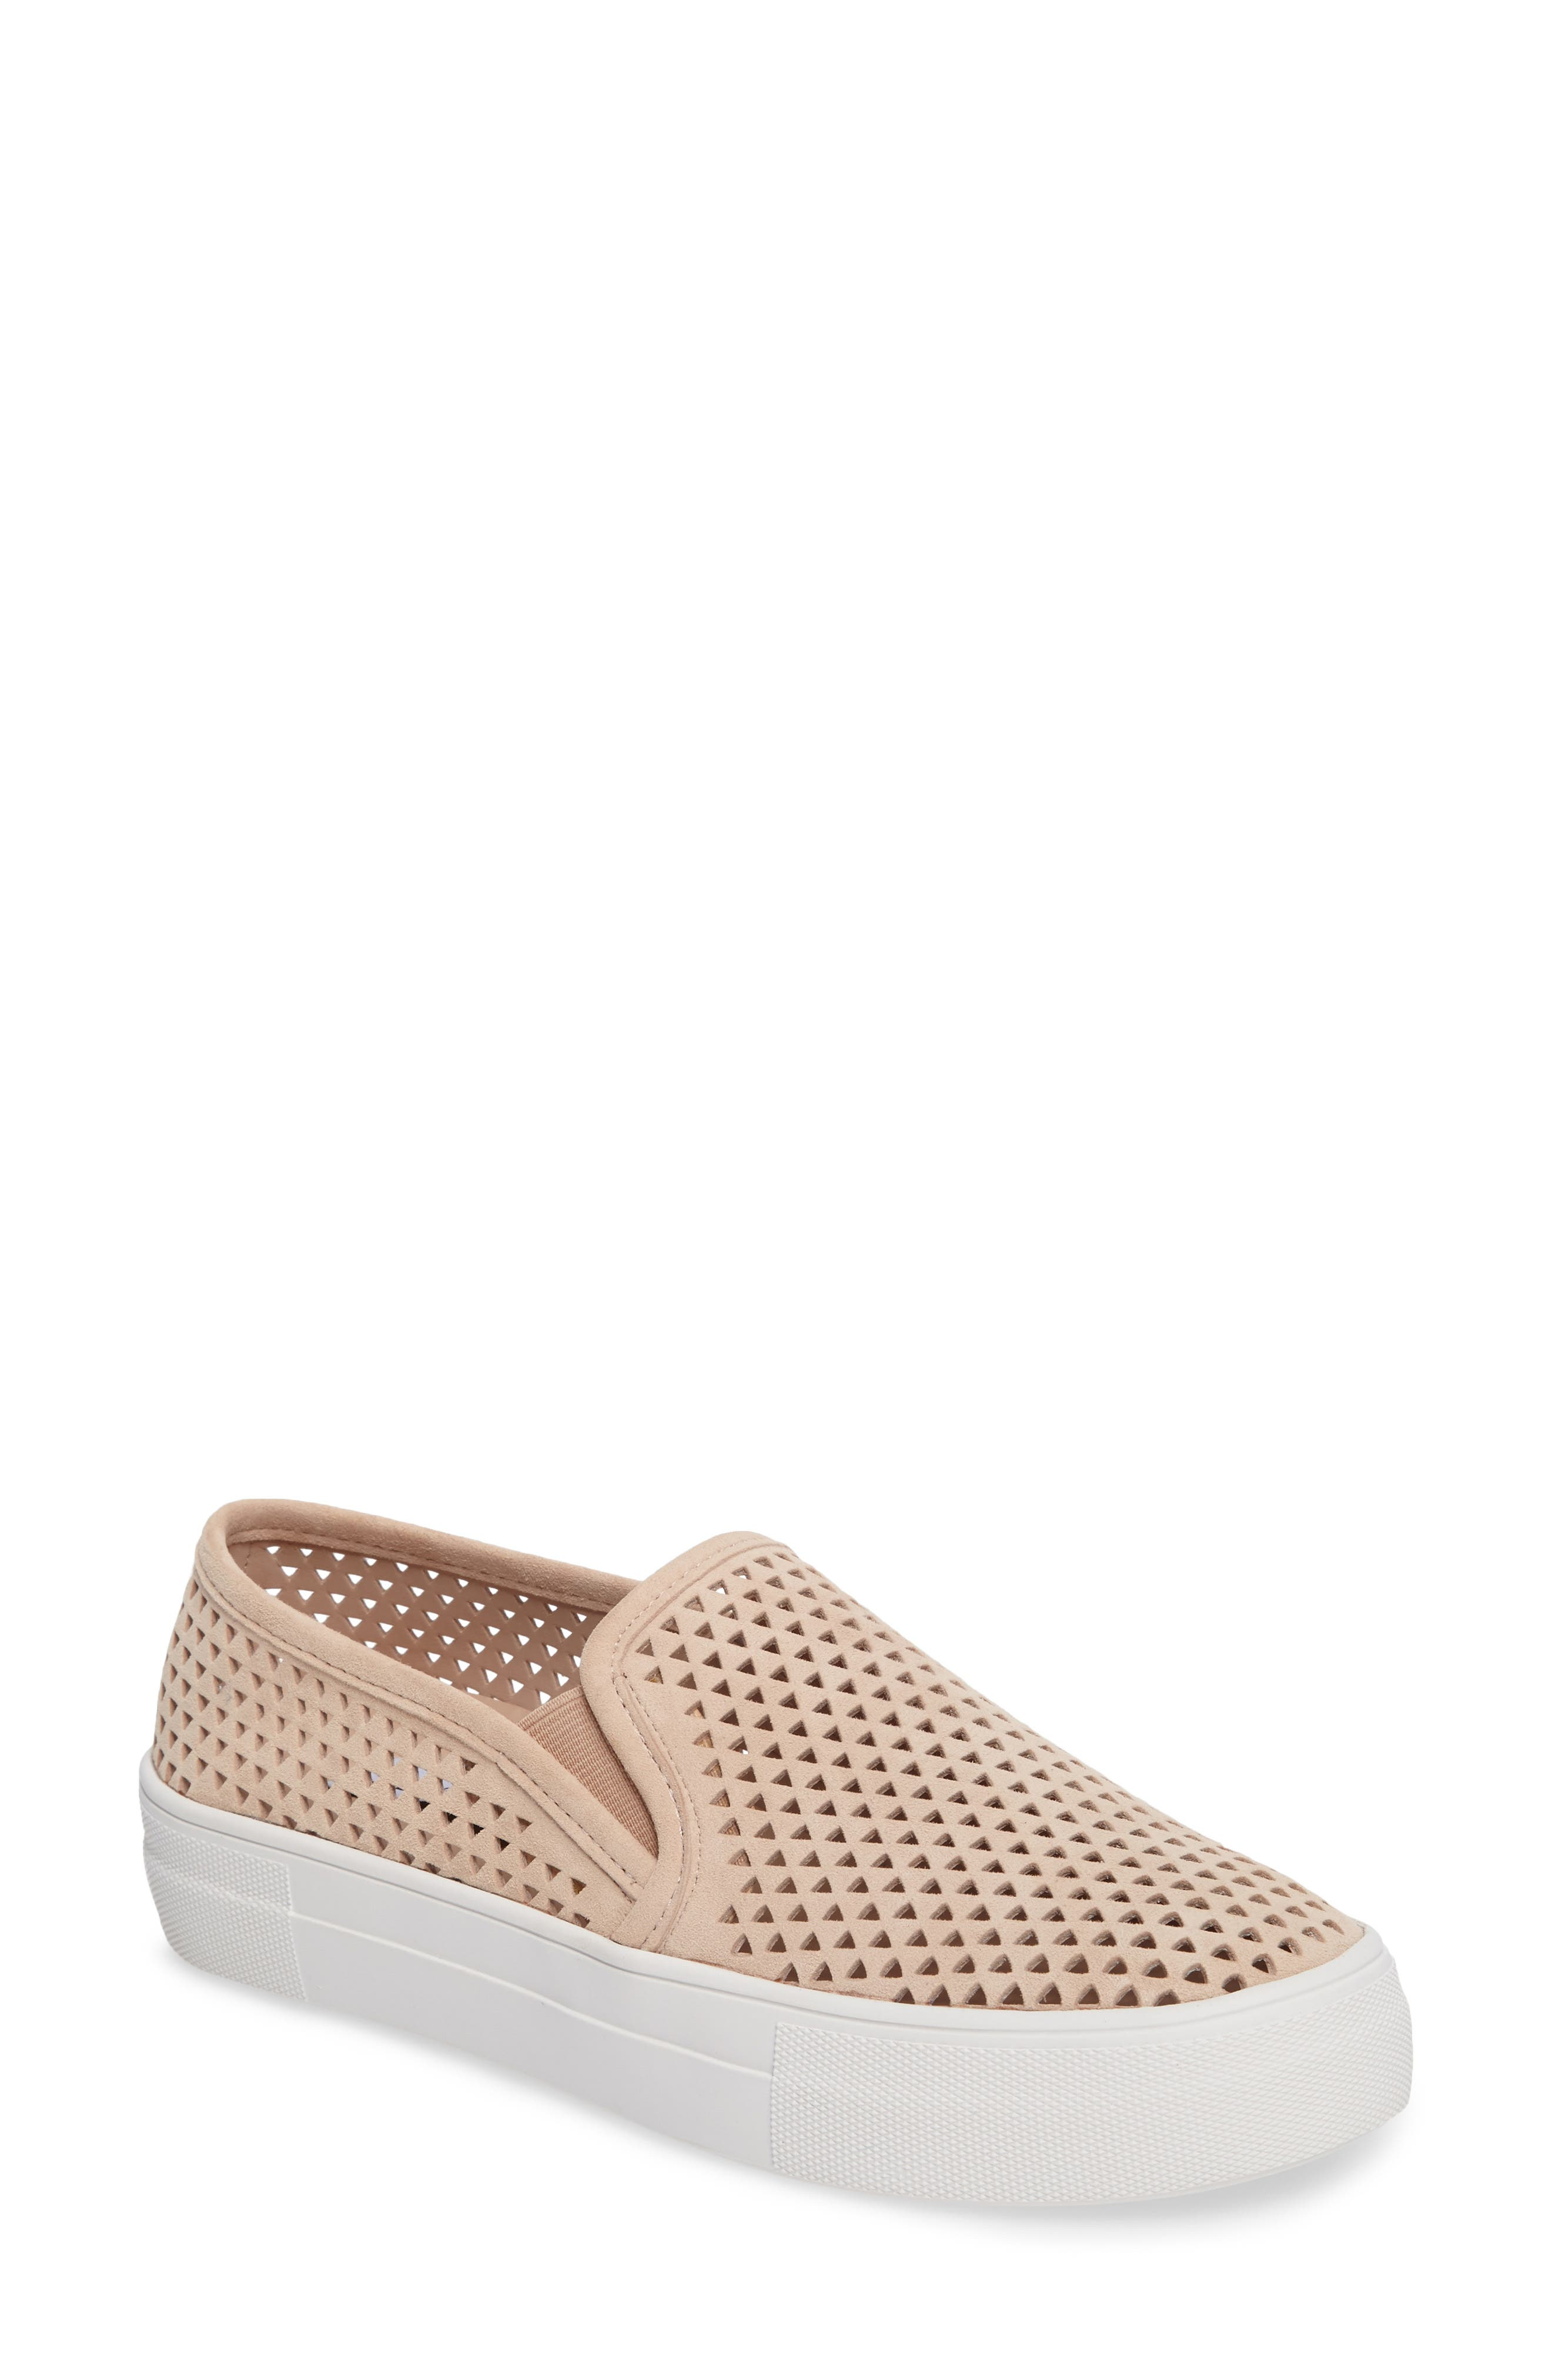 Gills Perforated Slip-On Sneaker,                             Main thumbnail 1, color,                             Natural Suede